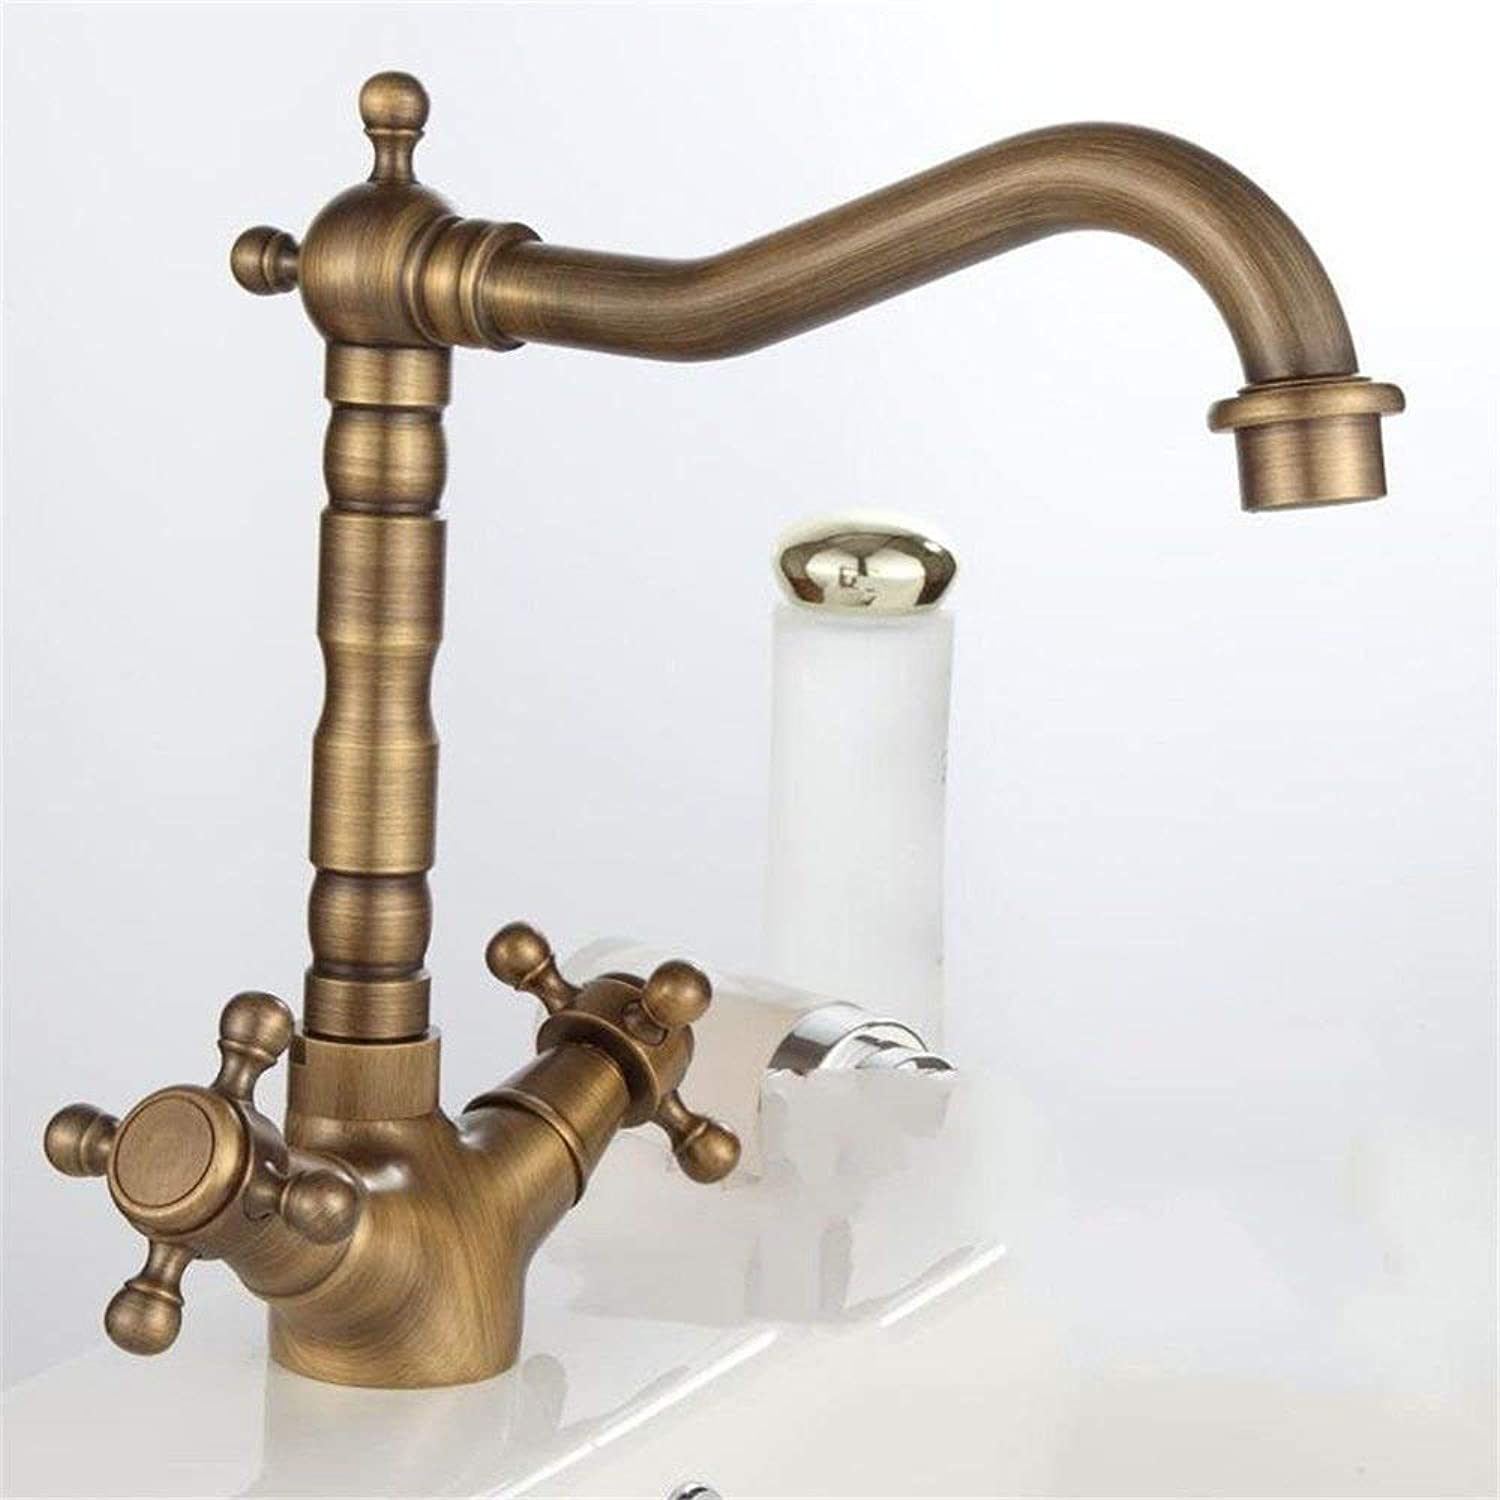 FERZA home Sink Mixer Tap Bathroom Kitchen Basin Tap Leakproof Save Water Retro Copper Cold Water Single Hole Sink